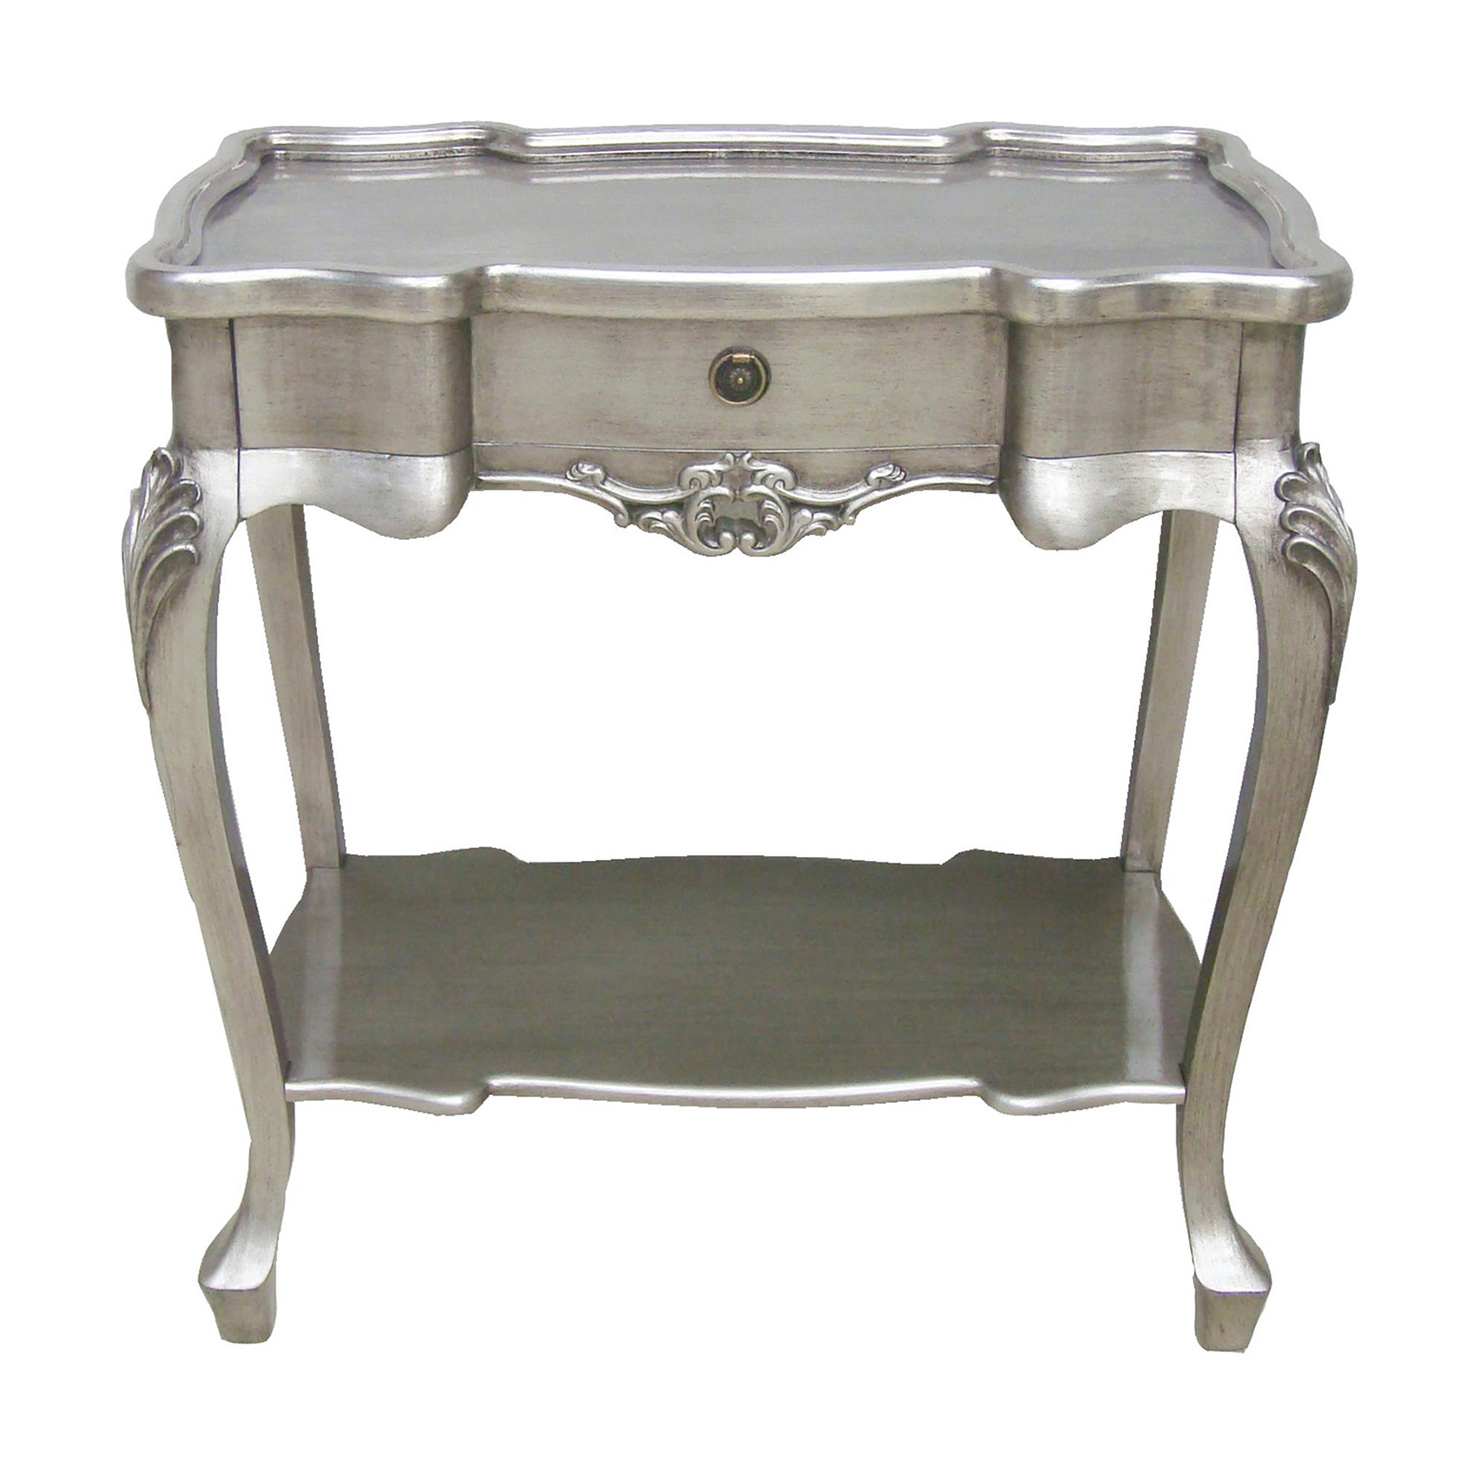 furniture elegant mirrored accent table for home ideas with drawer and shelf chic espresso desks target inexpensive side tables bar cabinet distressed berg beach hut accessories